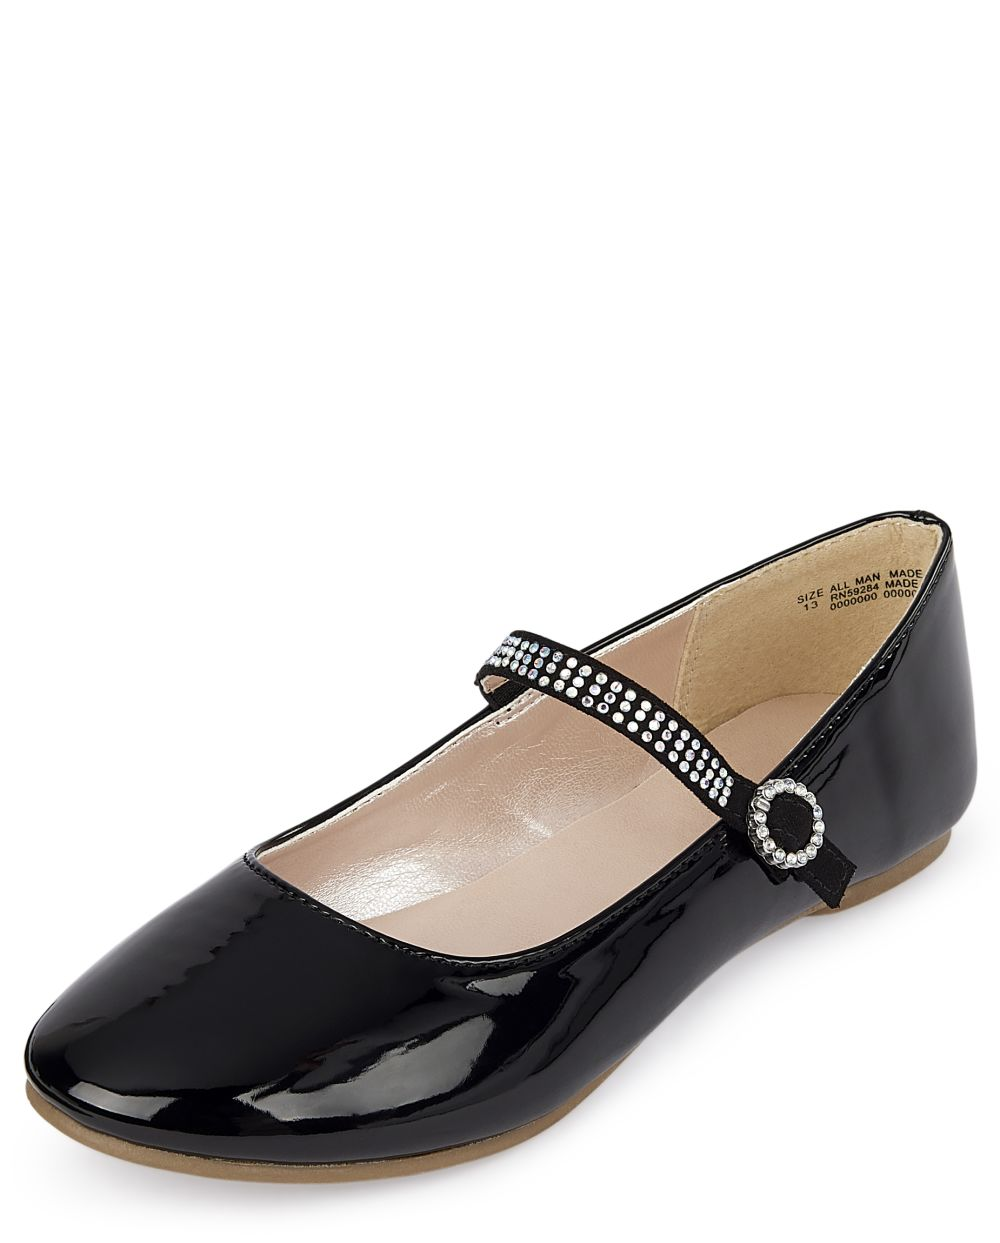 Girls Jeweled Faux Patent Leather Ballet Flats